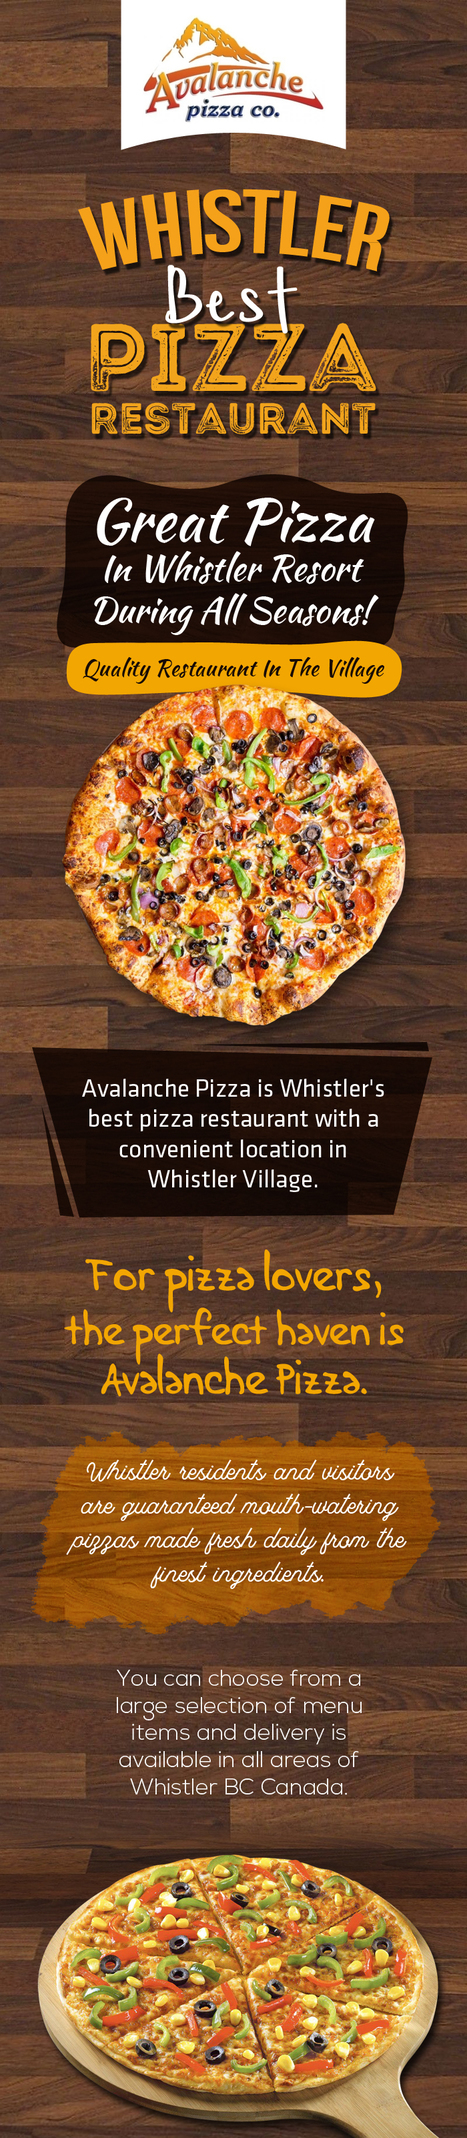 Get in touch with Avalanche Pizza to have great pizza every time, during any season. Here, we guarantee Whistler residents mouth-watering pizza that is made fresh daily from the finest ingredients.